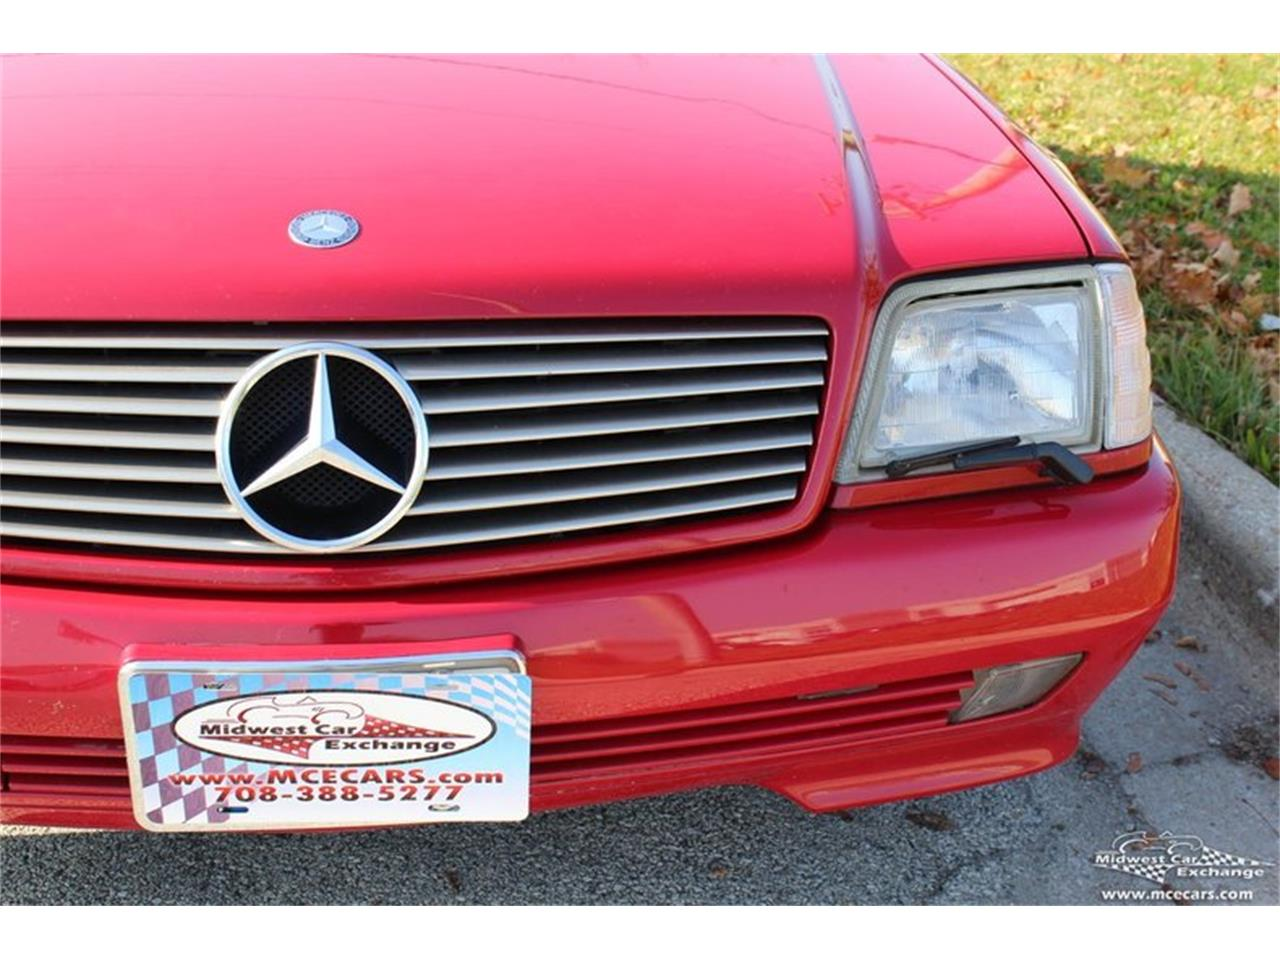 Large Picture of '95 Mercedes-Benz SL500 - $14,900.00 Offered by Midwest Car Exchange - M42A